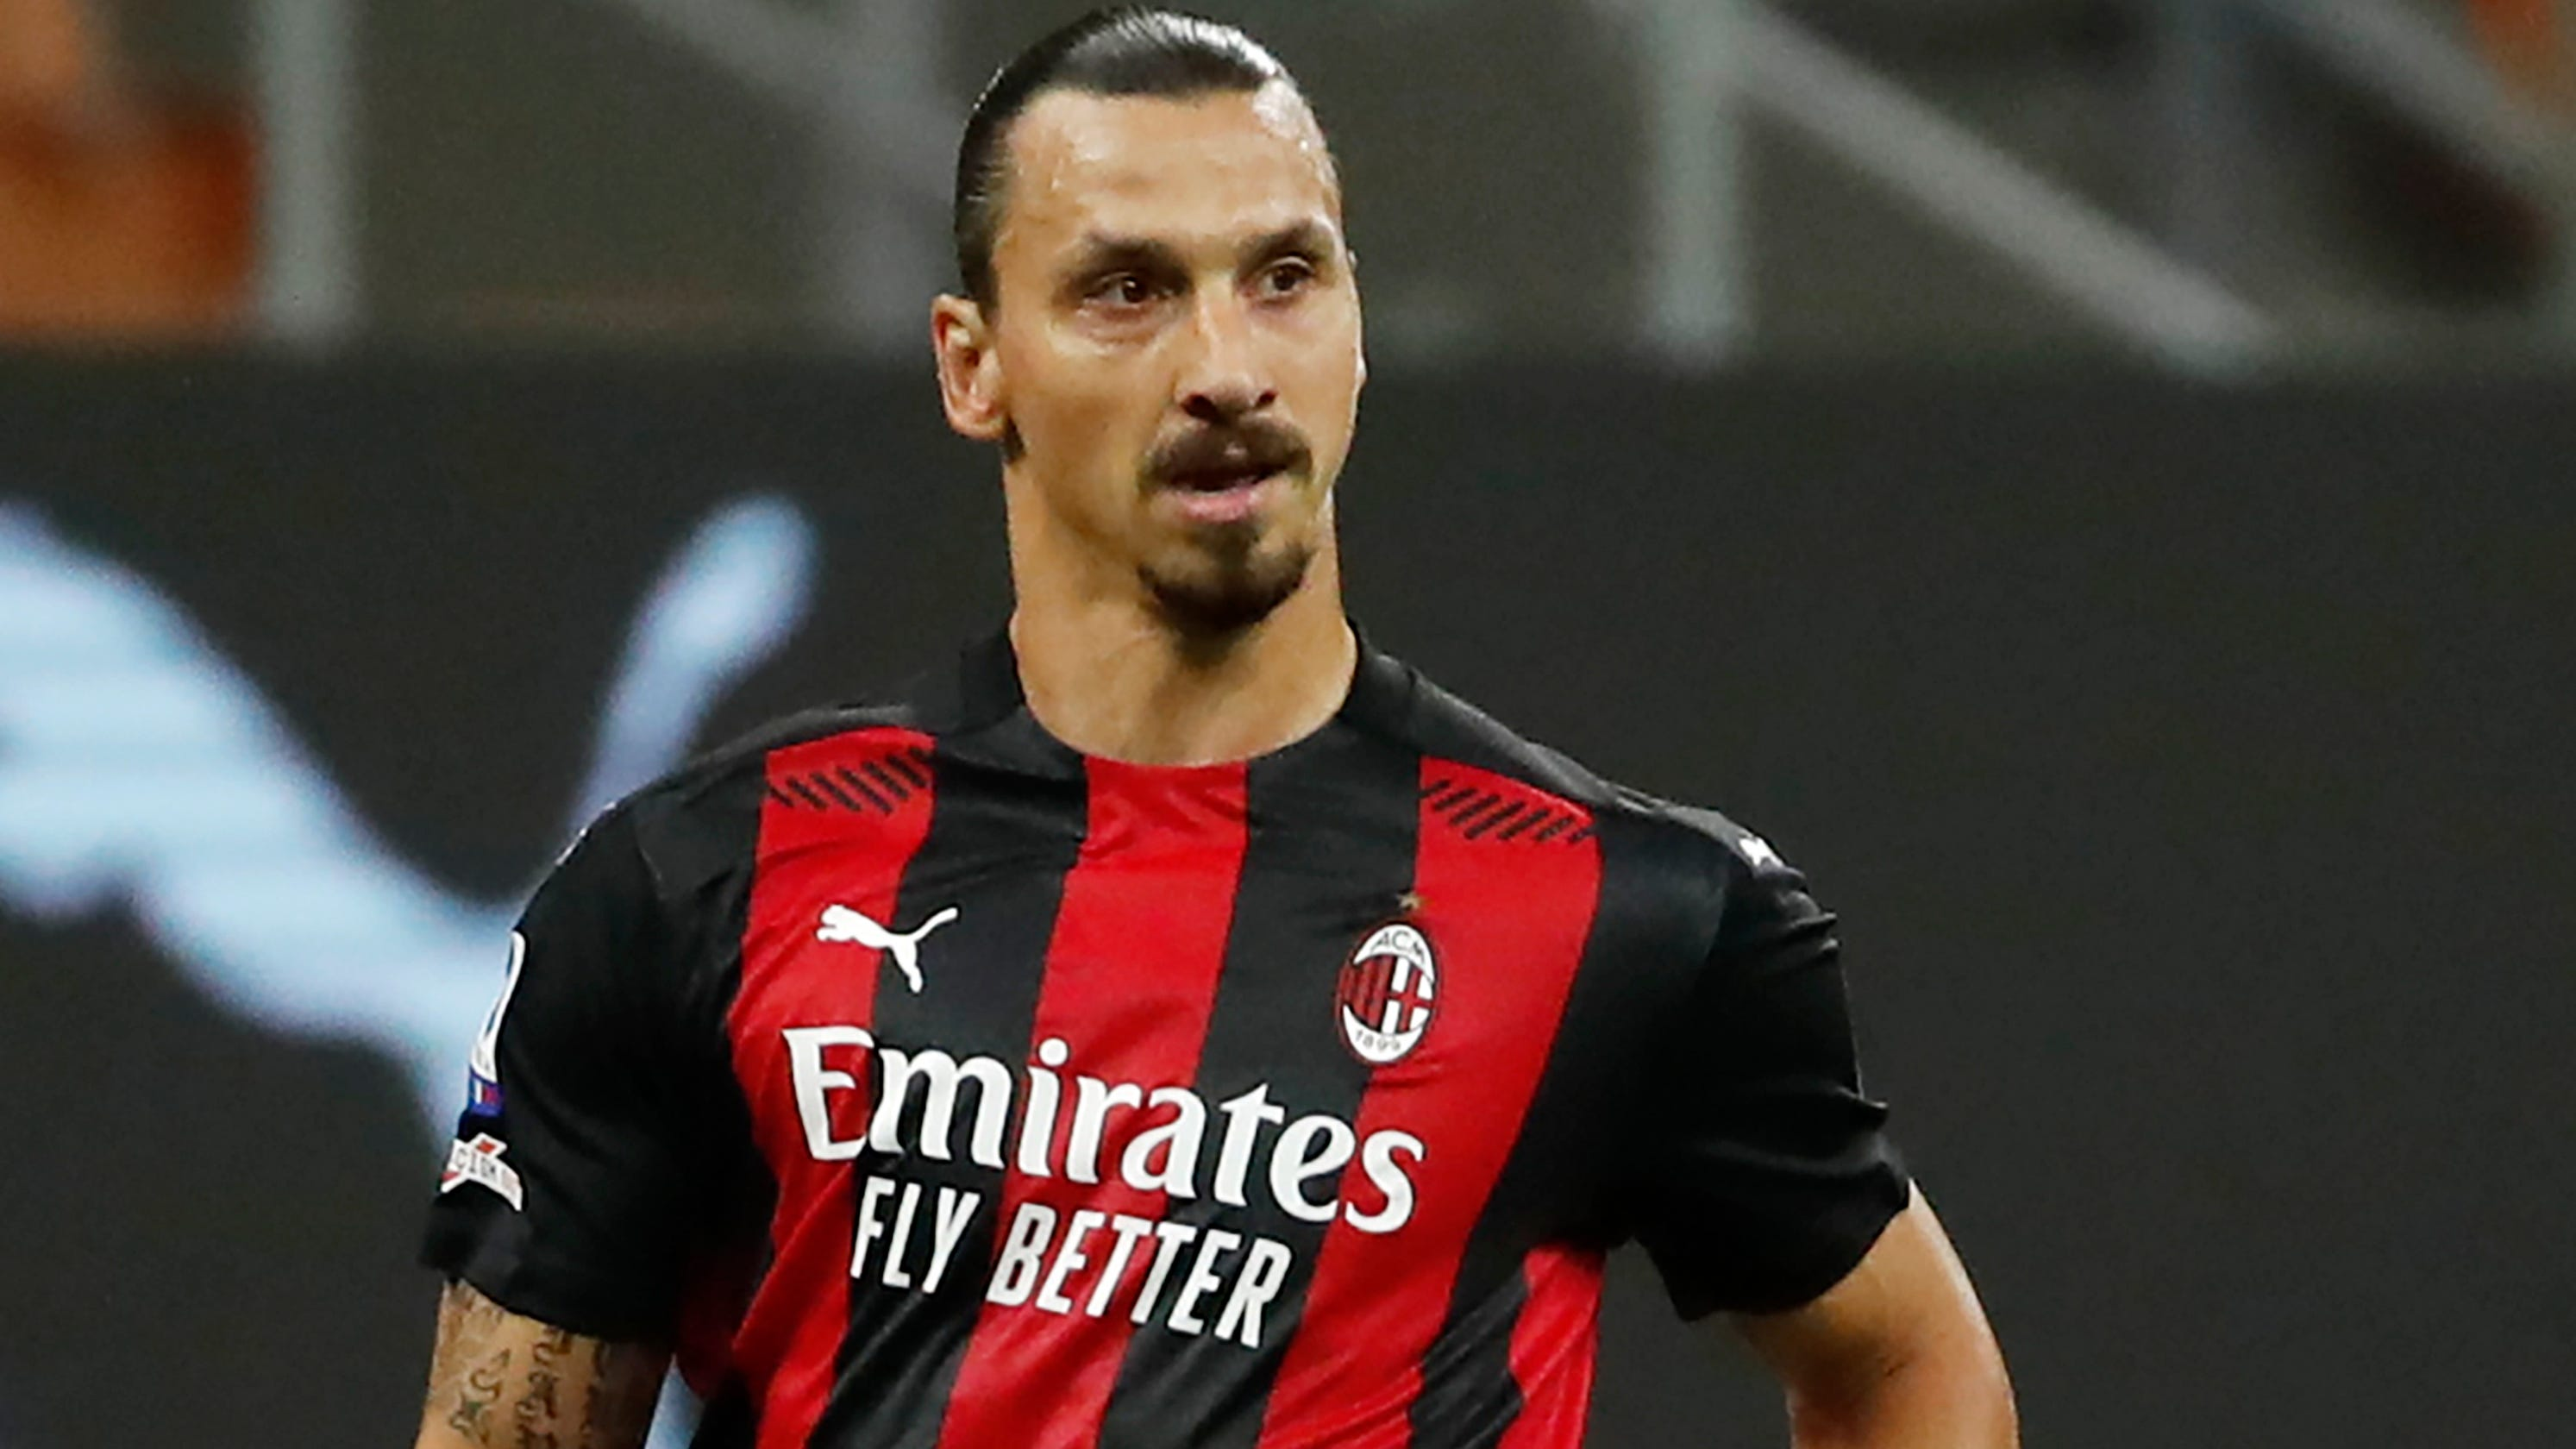 AC Milan announces Zlatan Ibrahimović tests positive for COVID-19